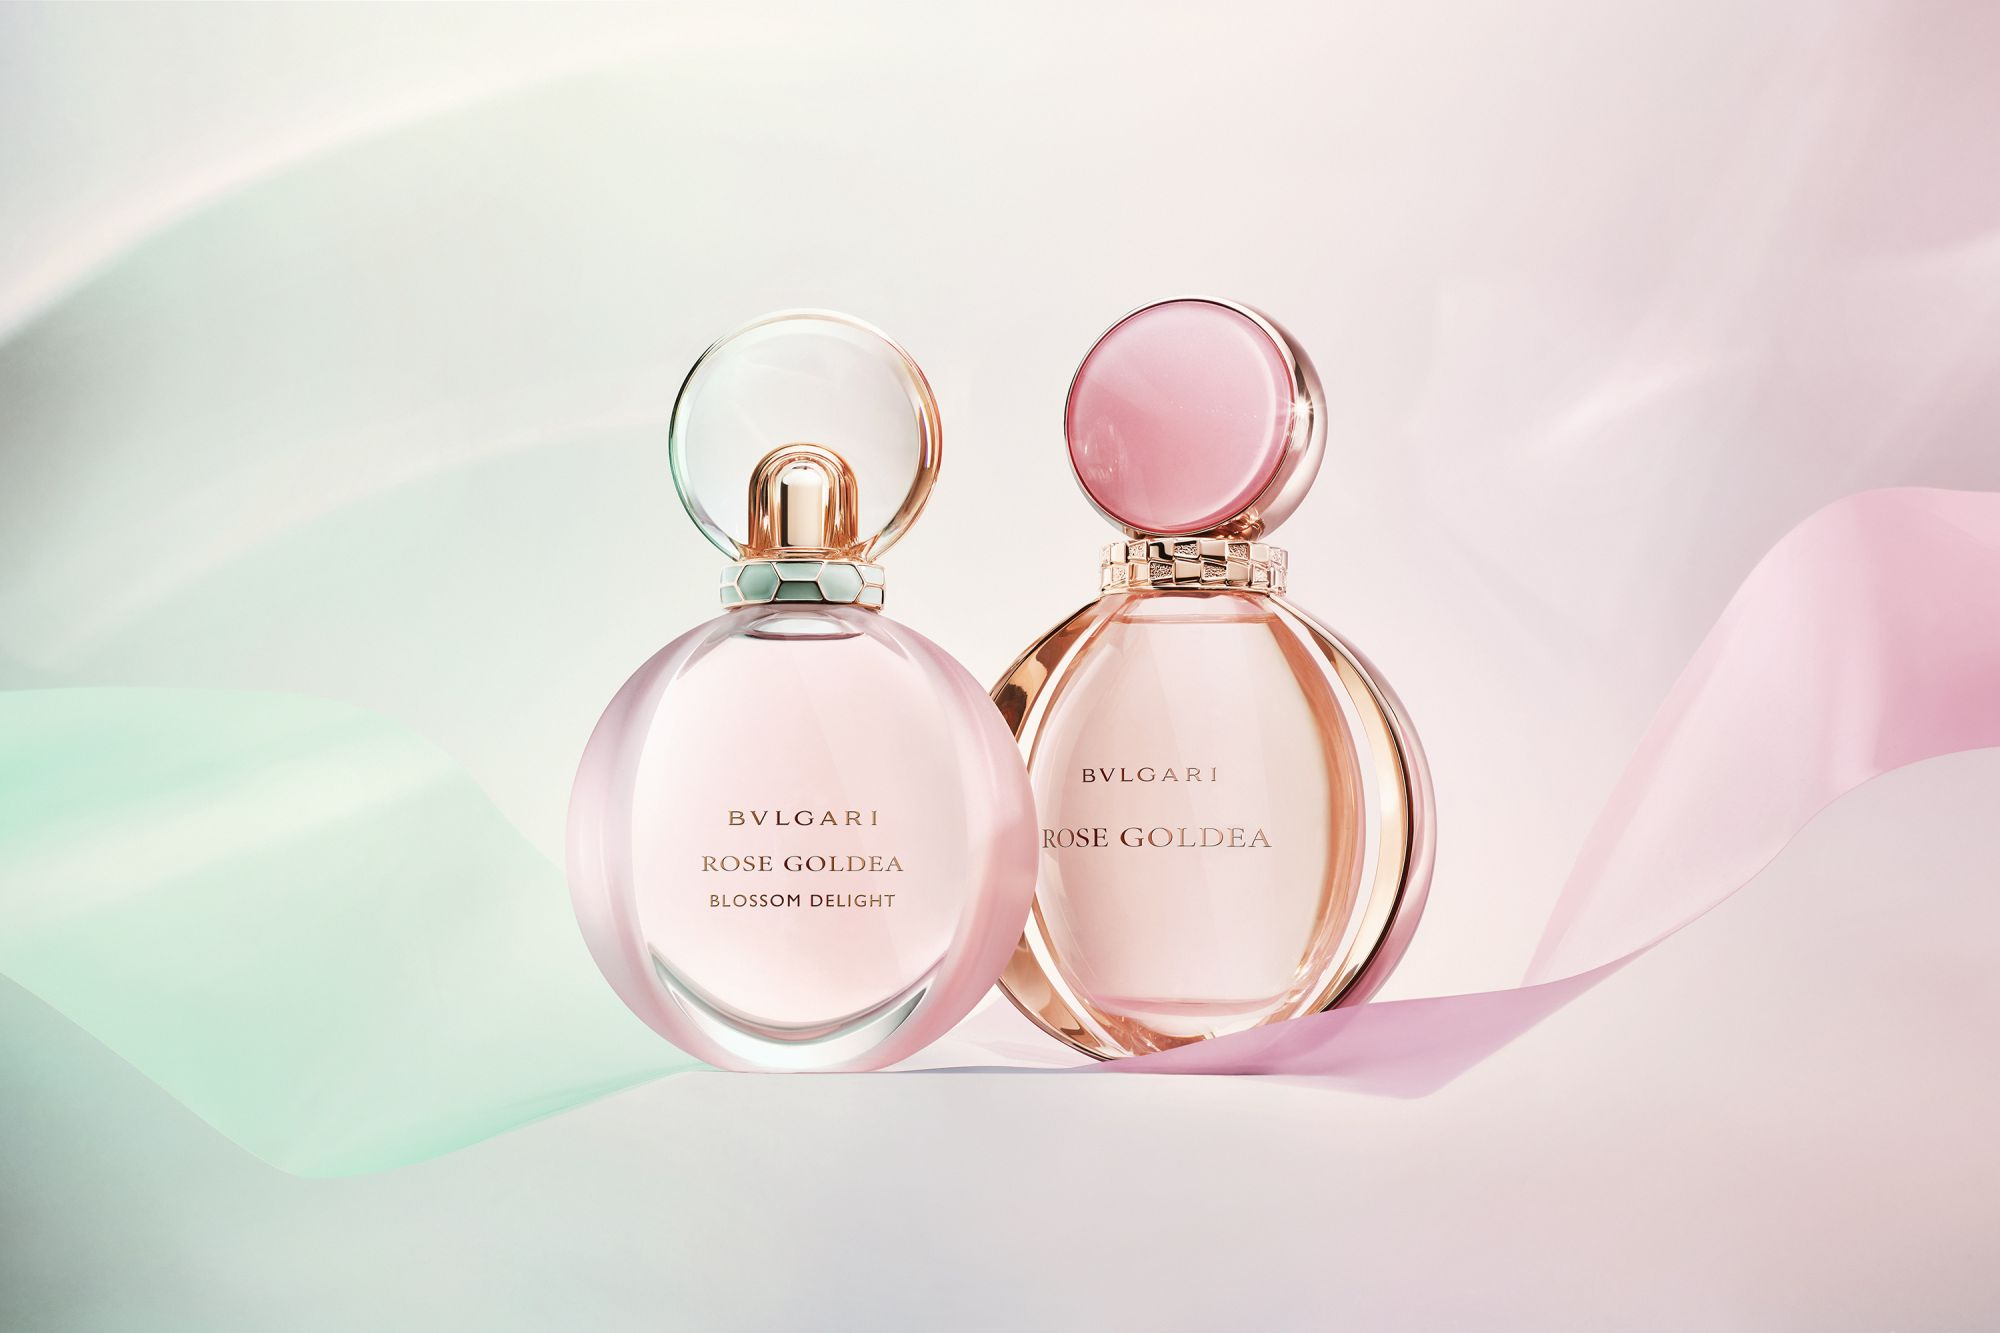 Bvlgari's Rose Goldea Blossom Delight Perfume Is Perfect For The Modern Woman